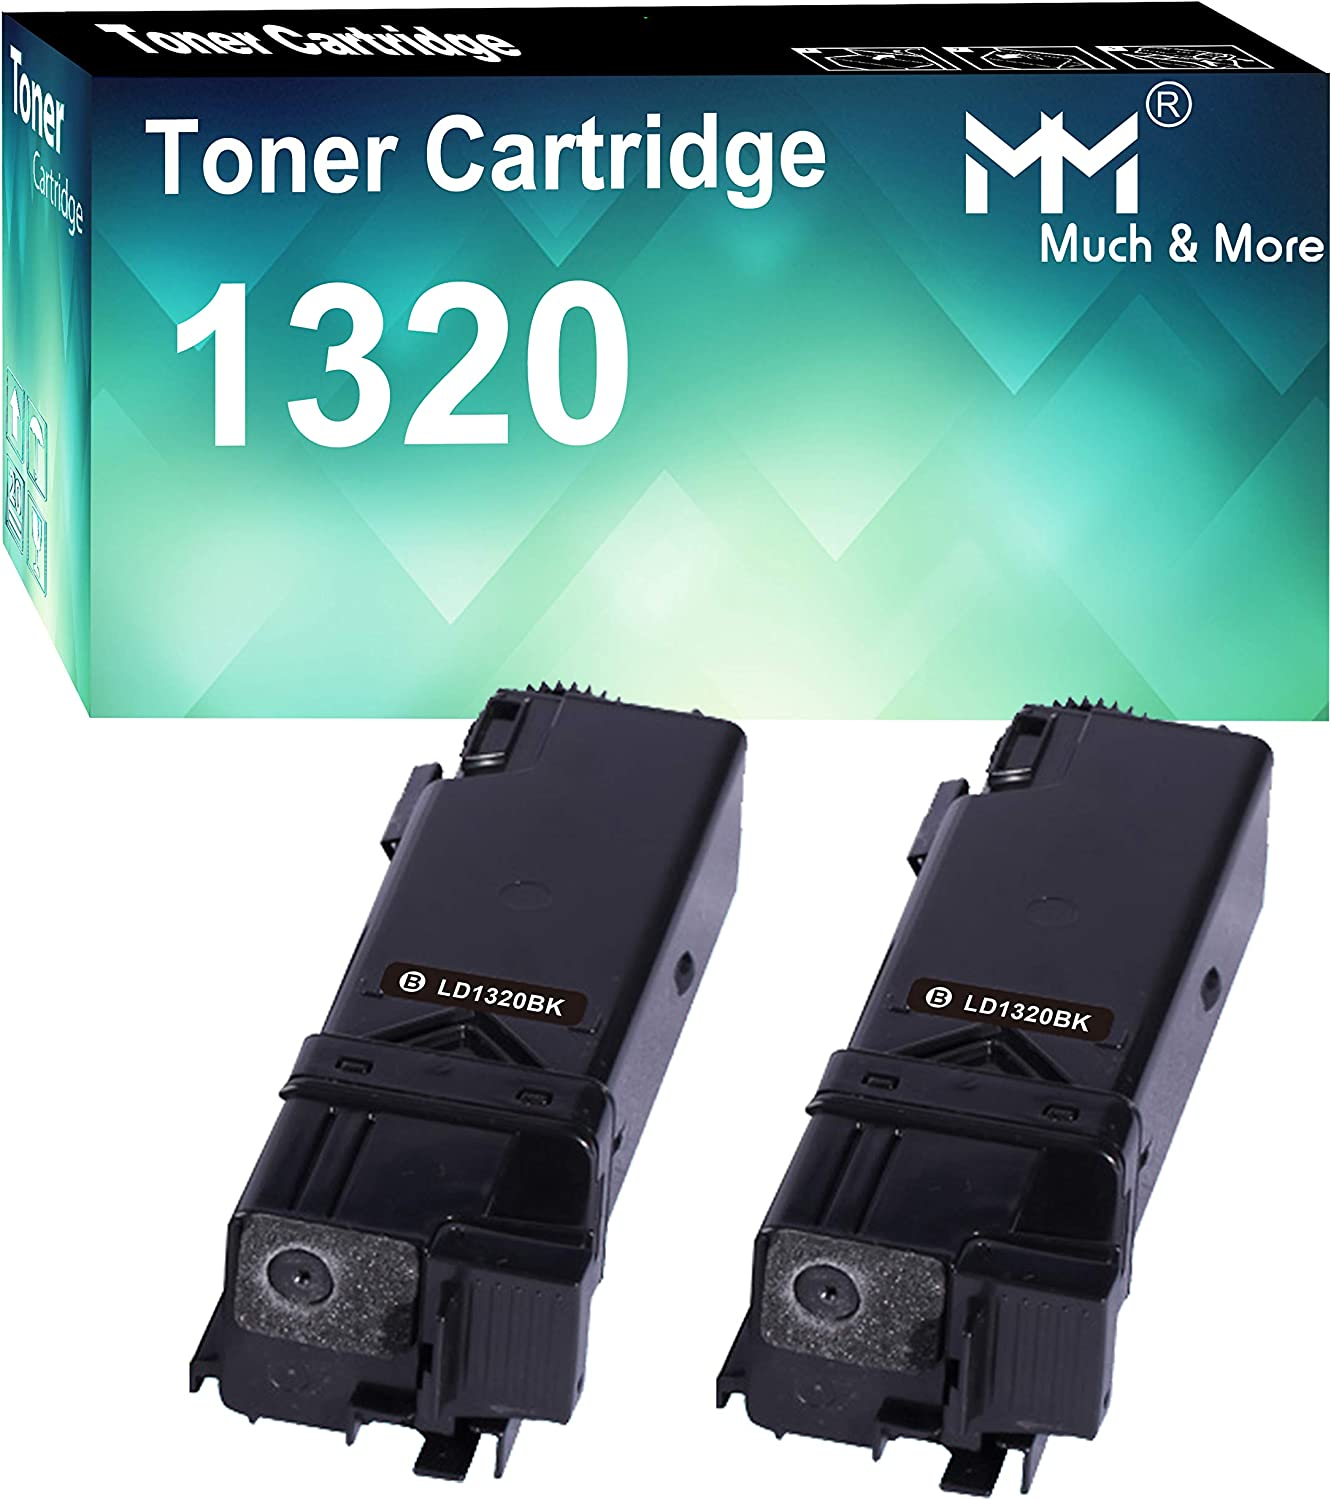 MM MUCH & MORE Compatible Toner Cartridge Replacement for Dell 310-9058 1320 to Used with Dell Color Laser 1320c Printer (2 x Black, High Yield)